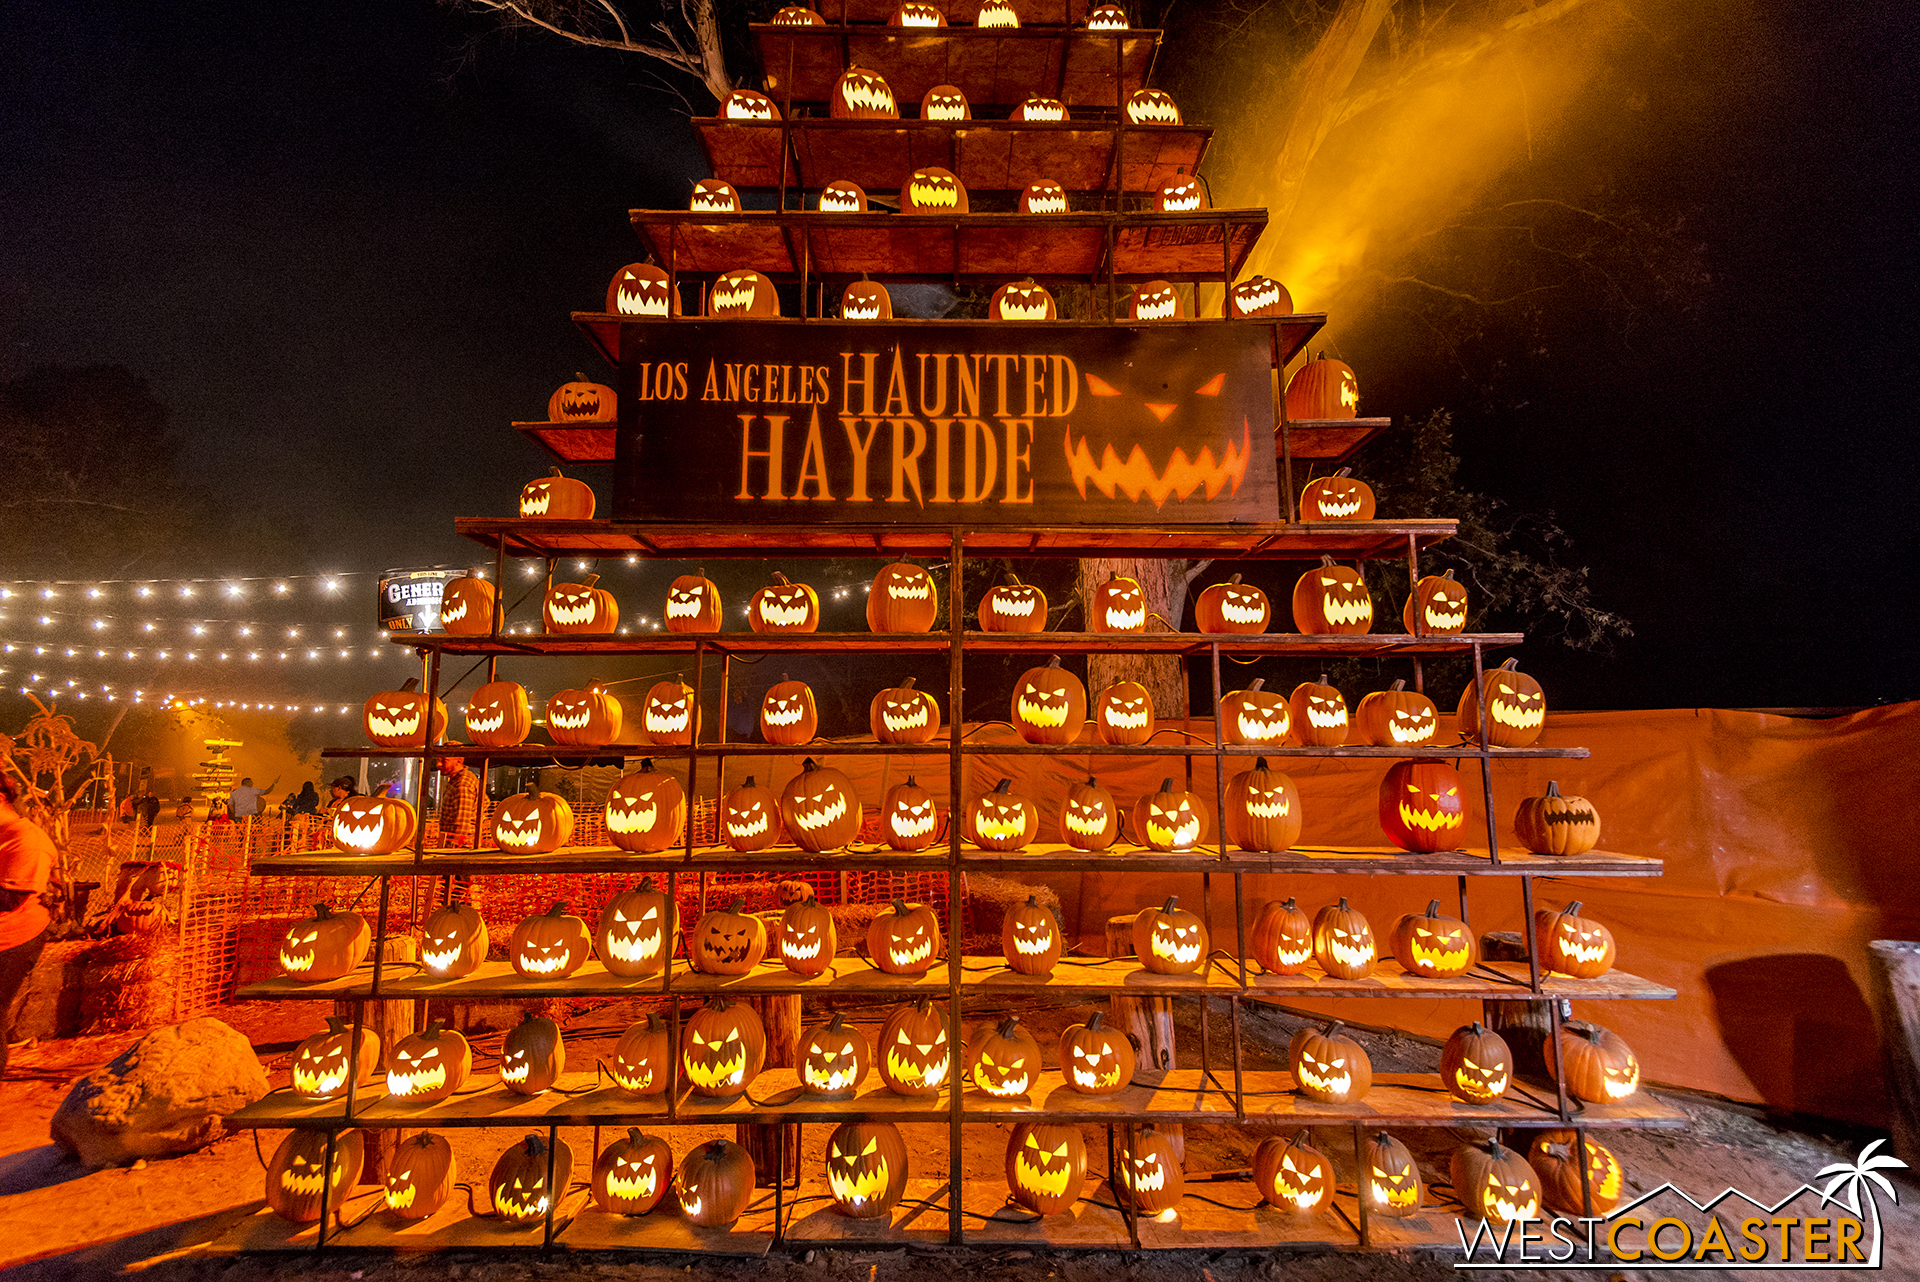 A tower of jack-o-lanterns at the L.A. Haunted Hay Ride.